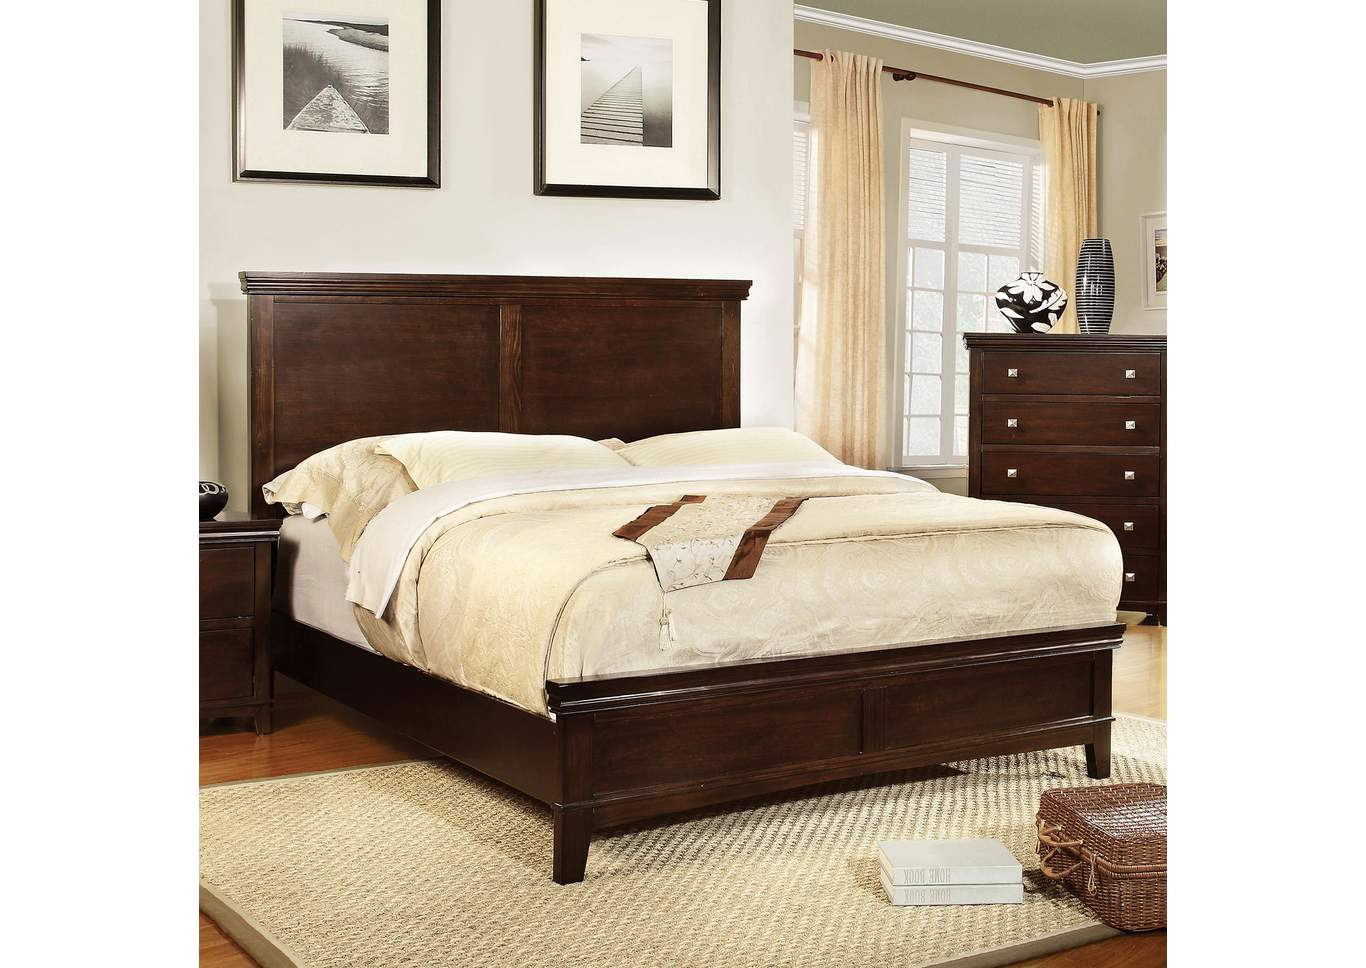 Spruce Brown Cherry Eastern King Platform Bed w/Dresser, Mirror and Nightstand,Furniture of America